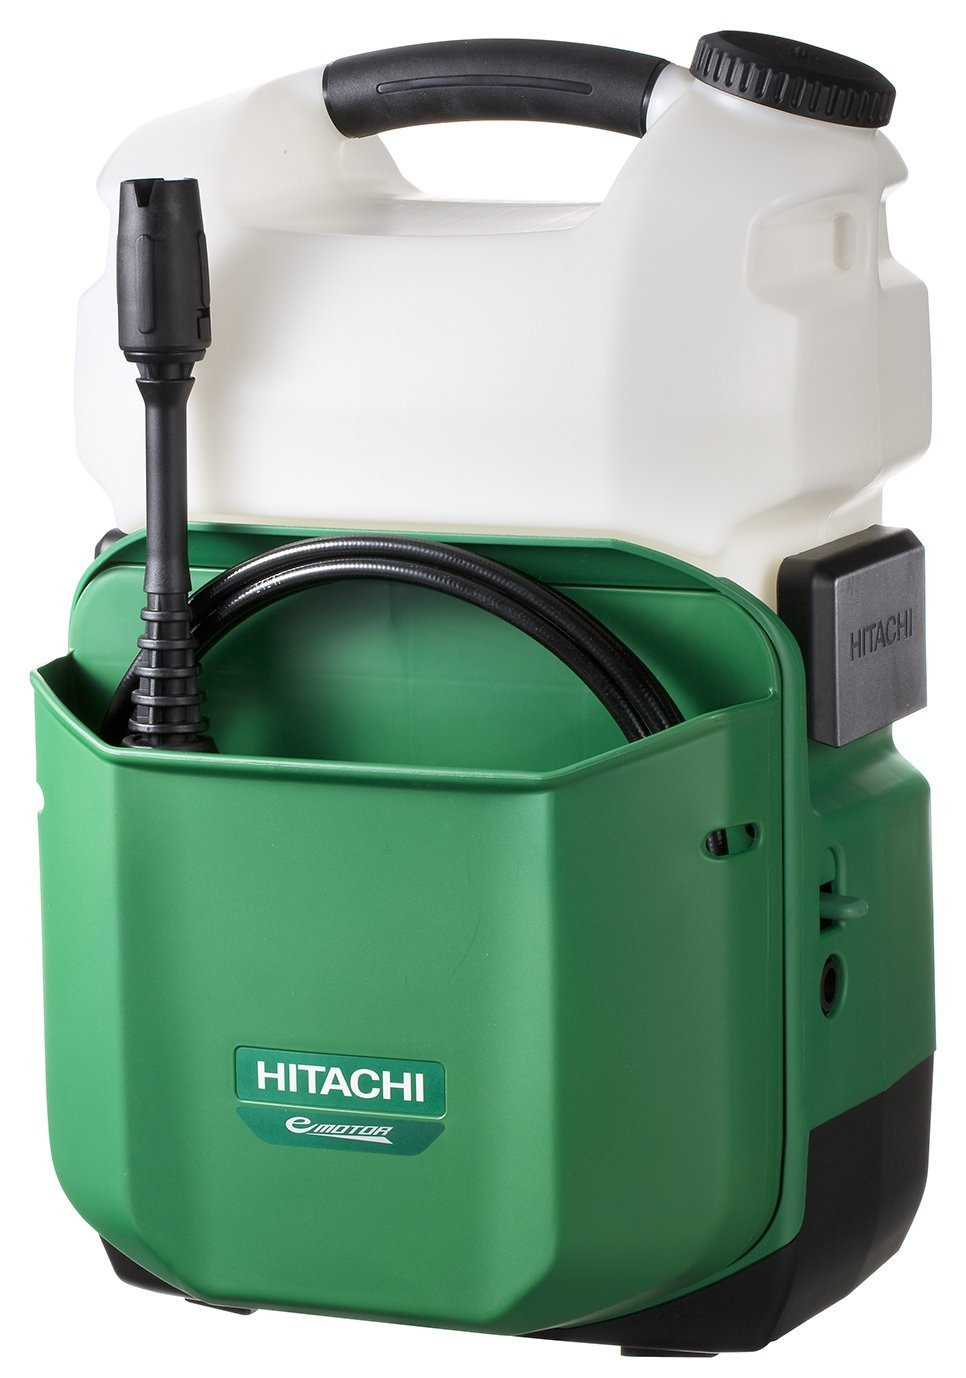 New Hitachi Cordless 18v Pressure Washer Tool Craze